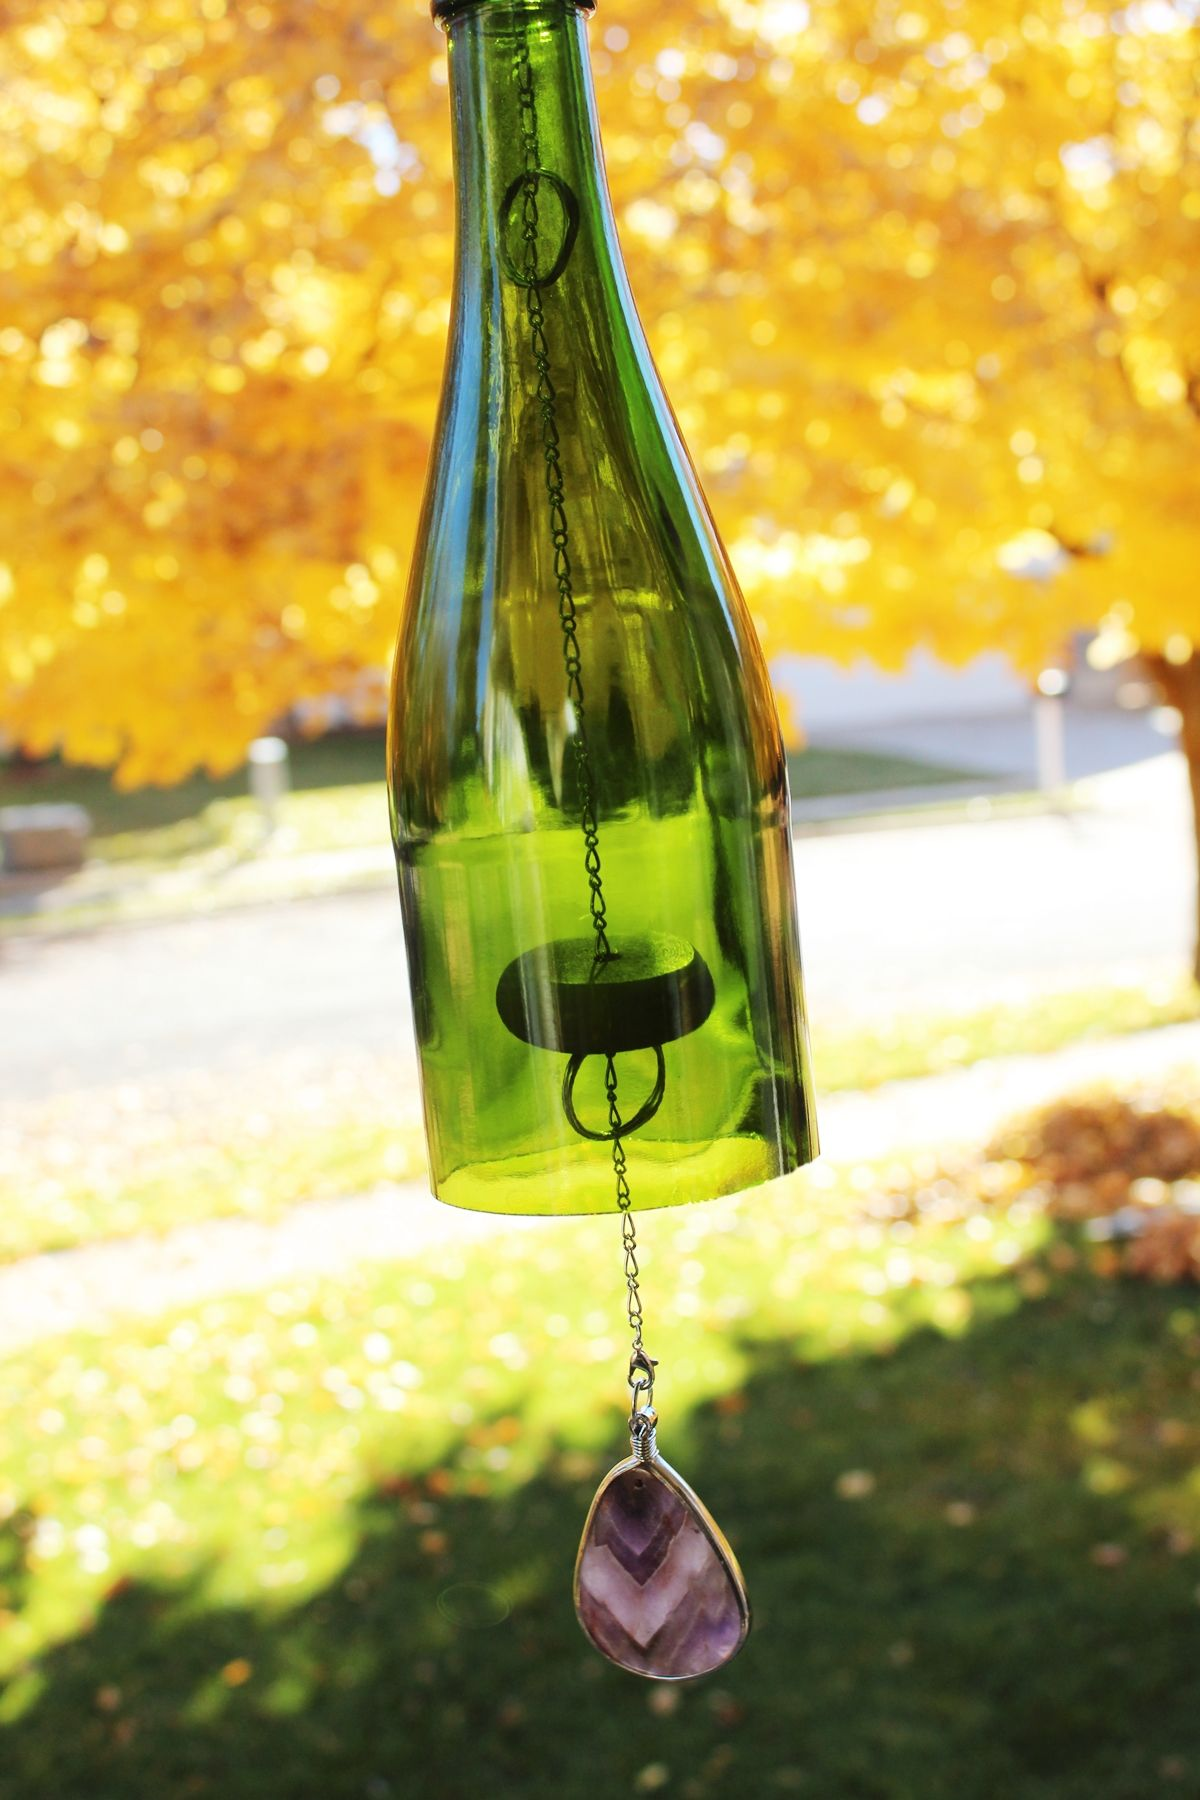 Diy glass bottle wind chime for Glass bottle wind chimes